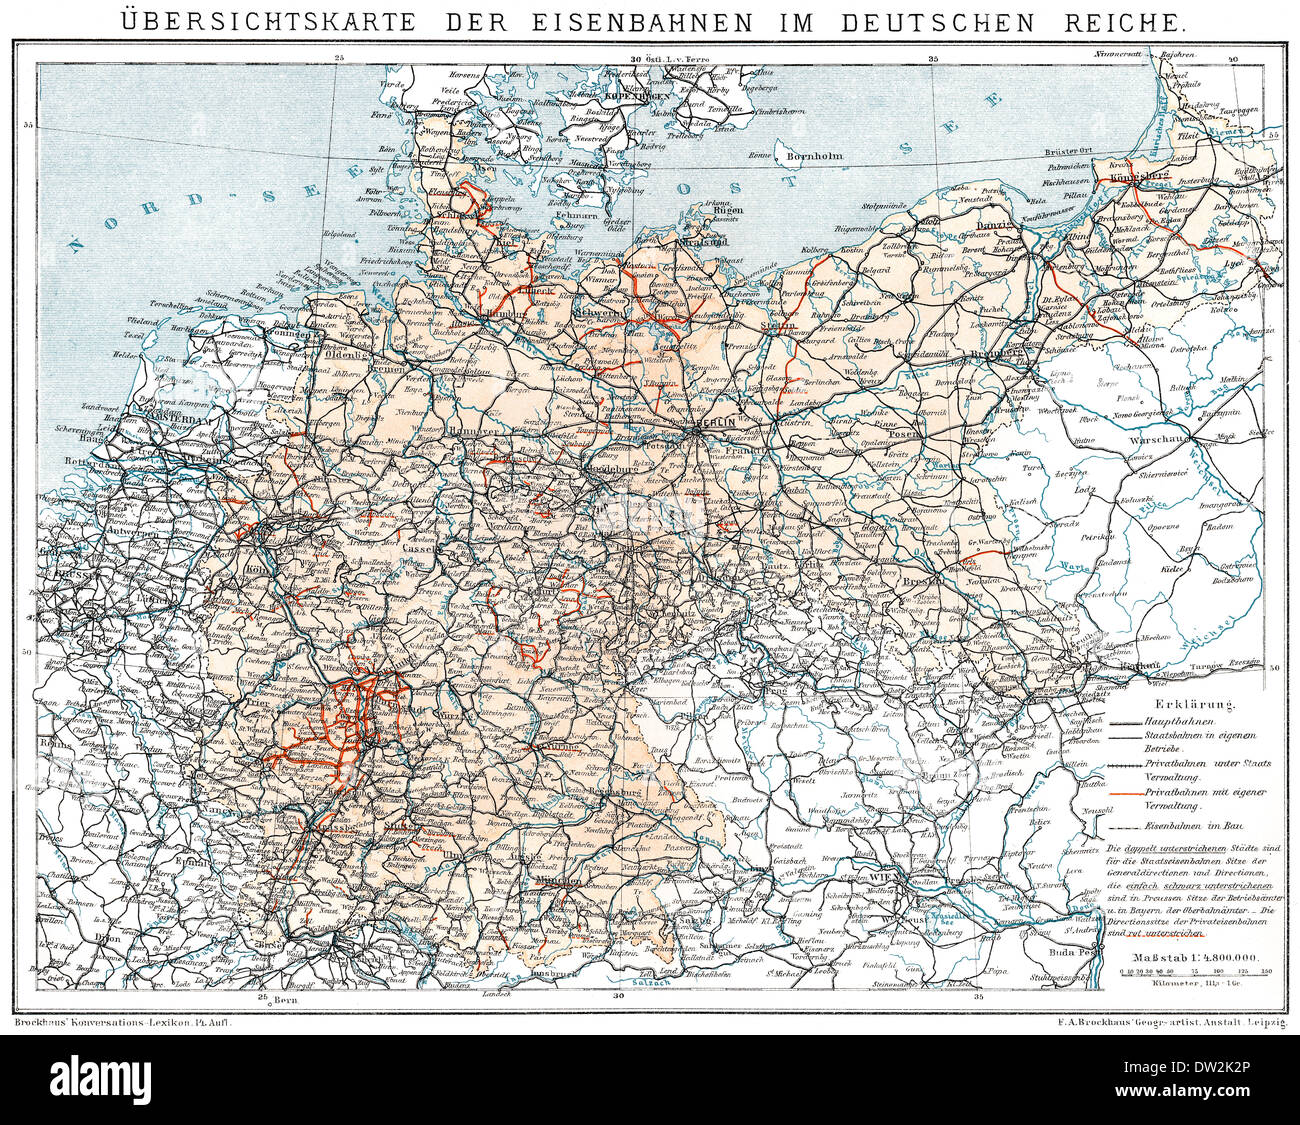 Historical map of German Empire, 1894, state railways and private railways, - Stock Image